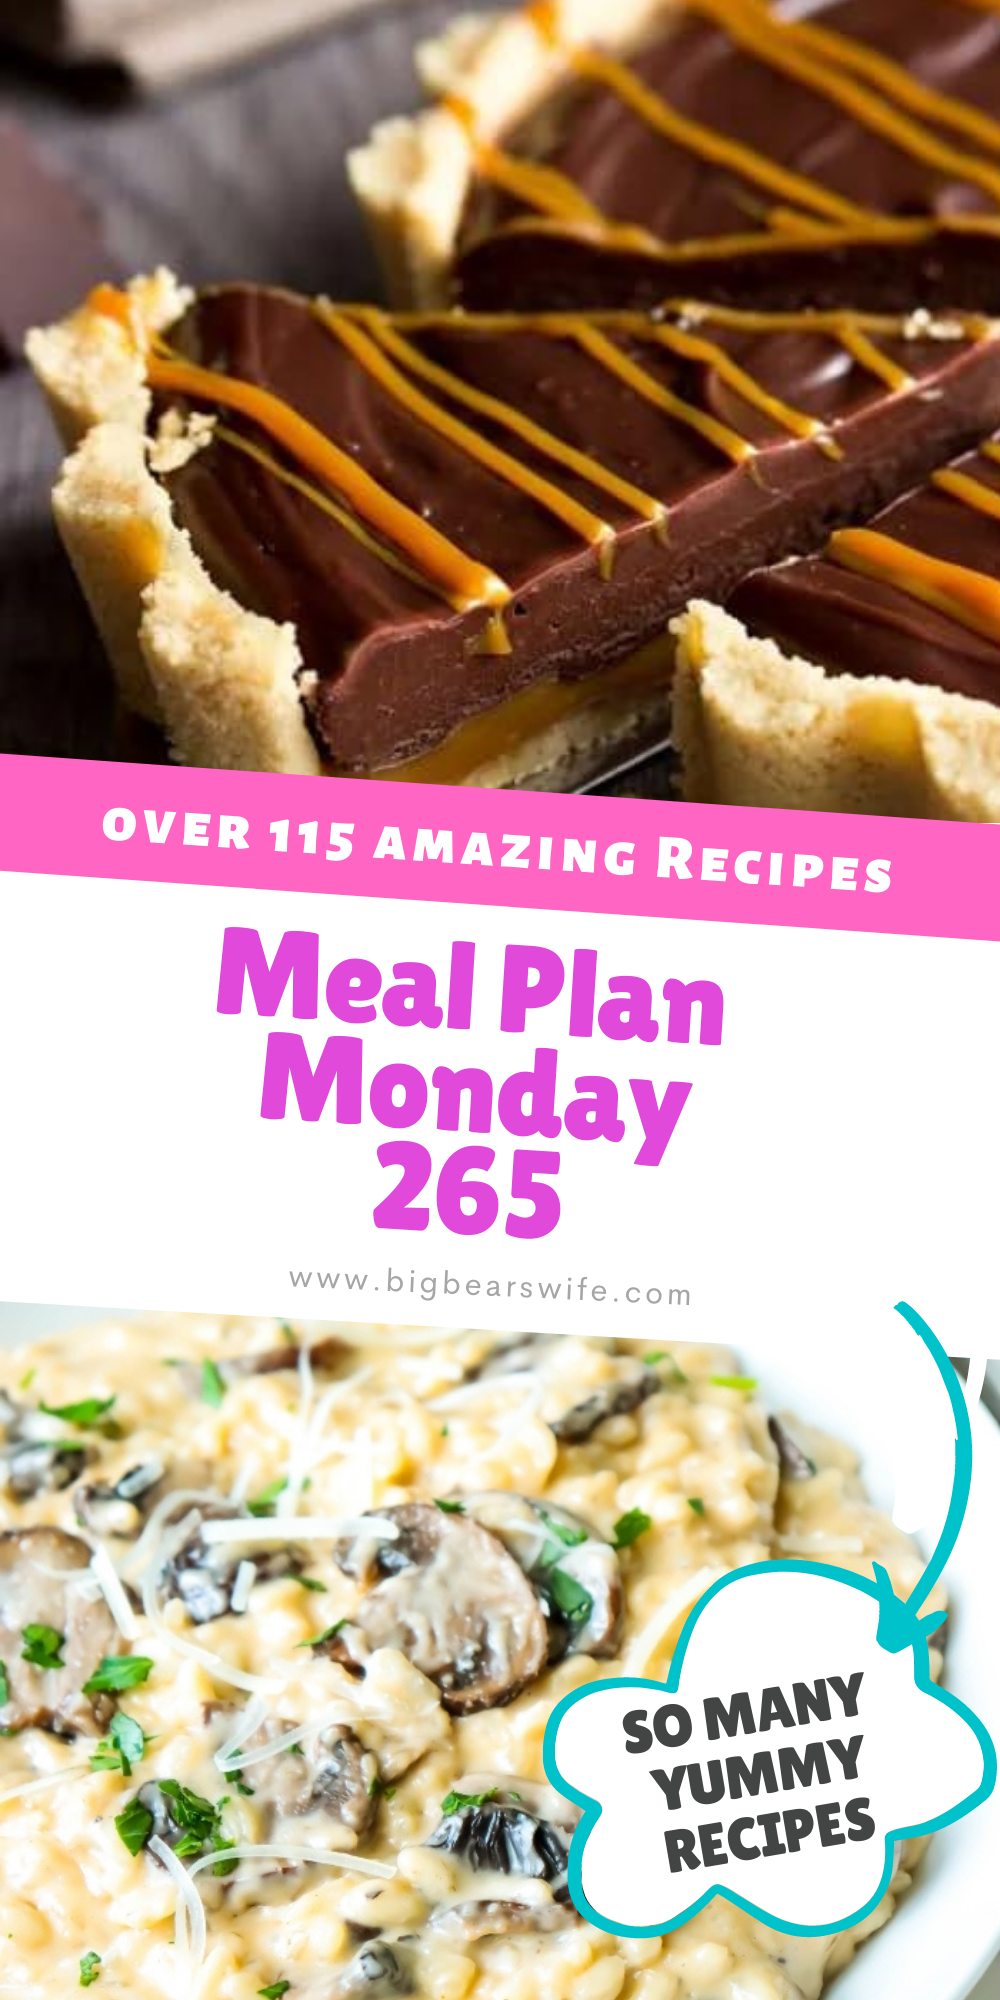 Welcome to Meal Plan Monday 265! We're featuring recipes like, Mexican Stuffed Shells, Slow Cooker Buffalo Chicken, Insanely Easy No Bake Caramel Chocolate Tart and Mushroom Risotto! via @bigbearswife